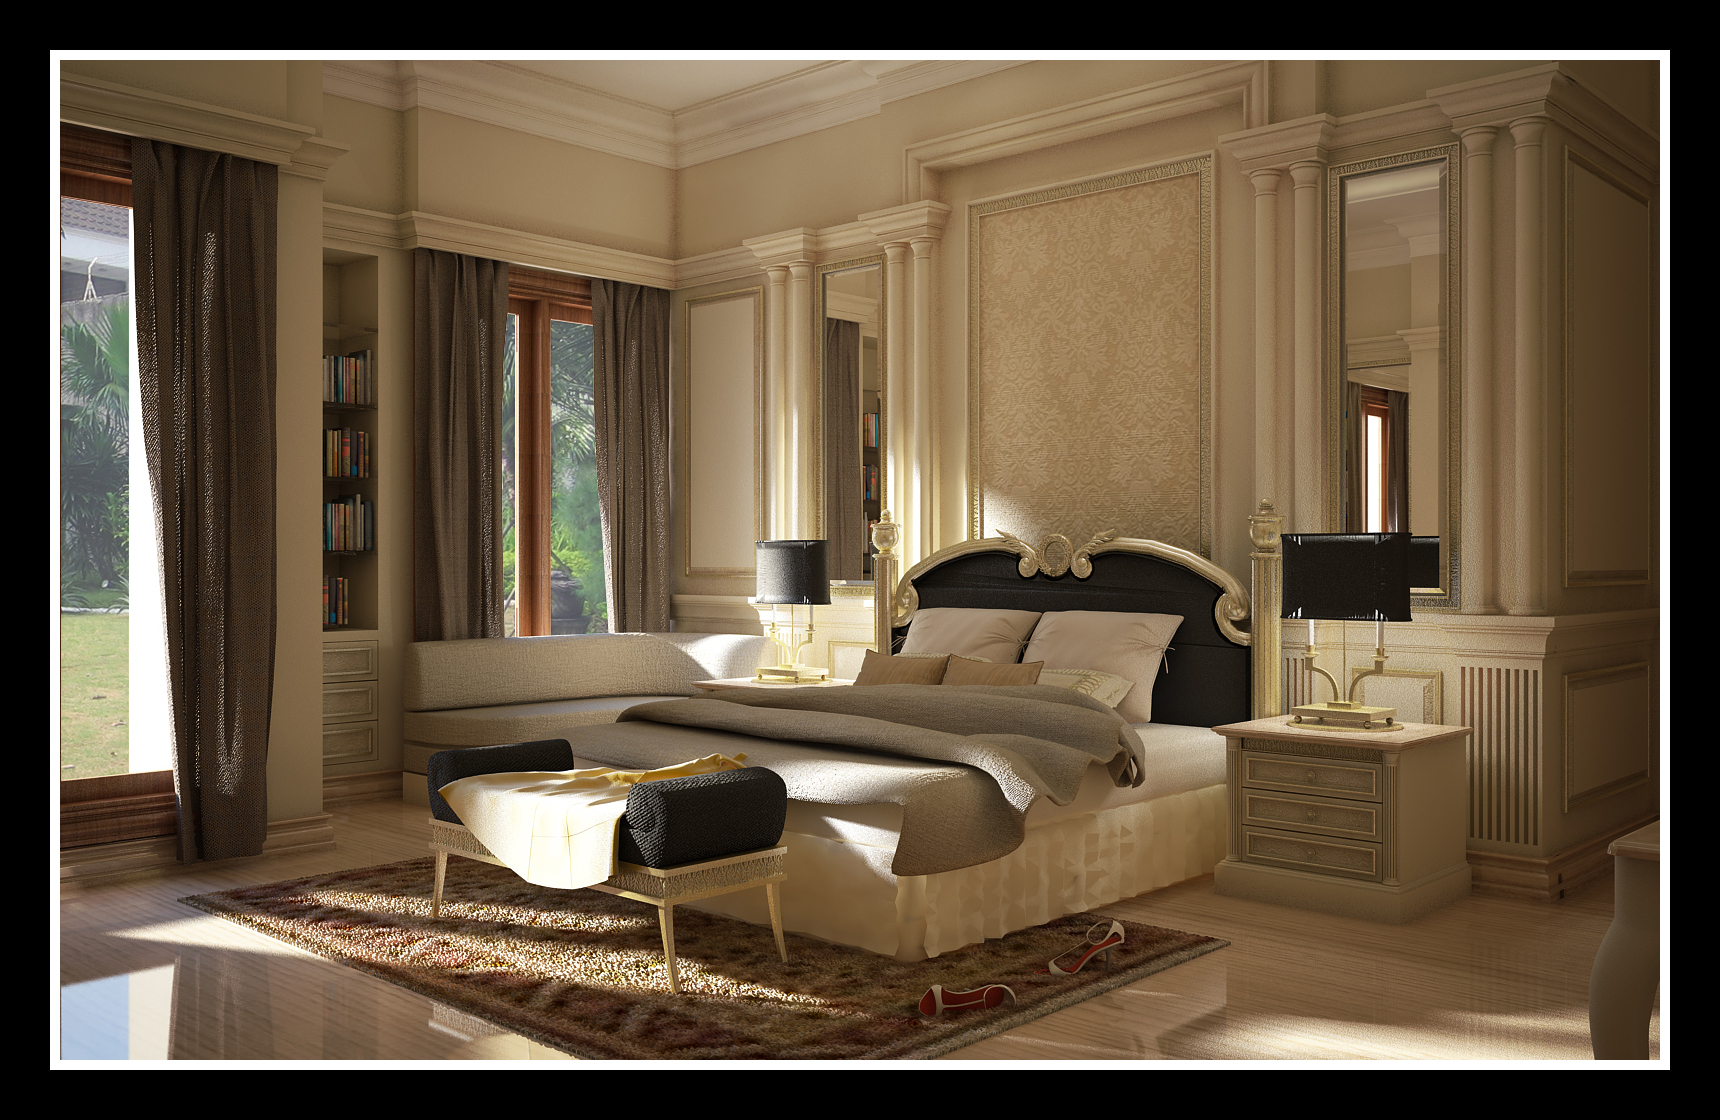 Interior design 3d home designer for Bedroom interior design pictures